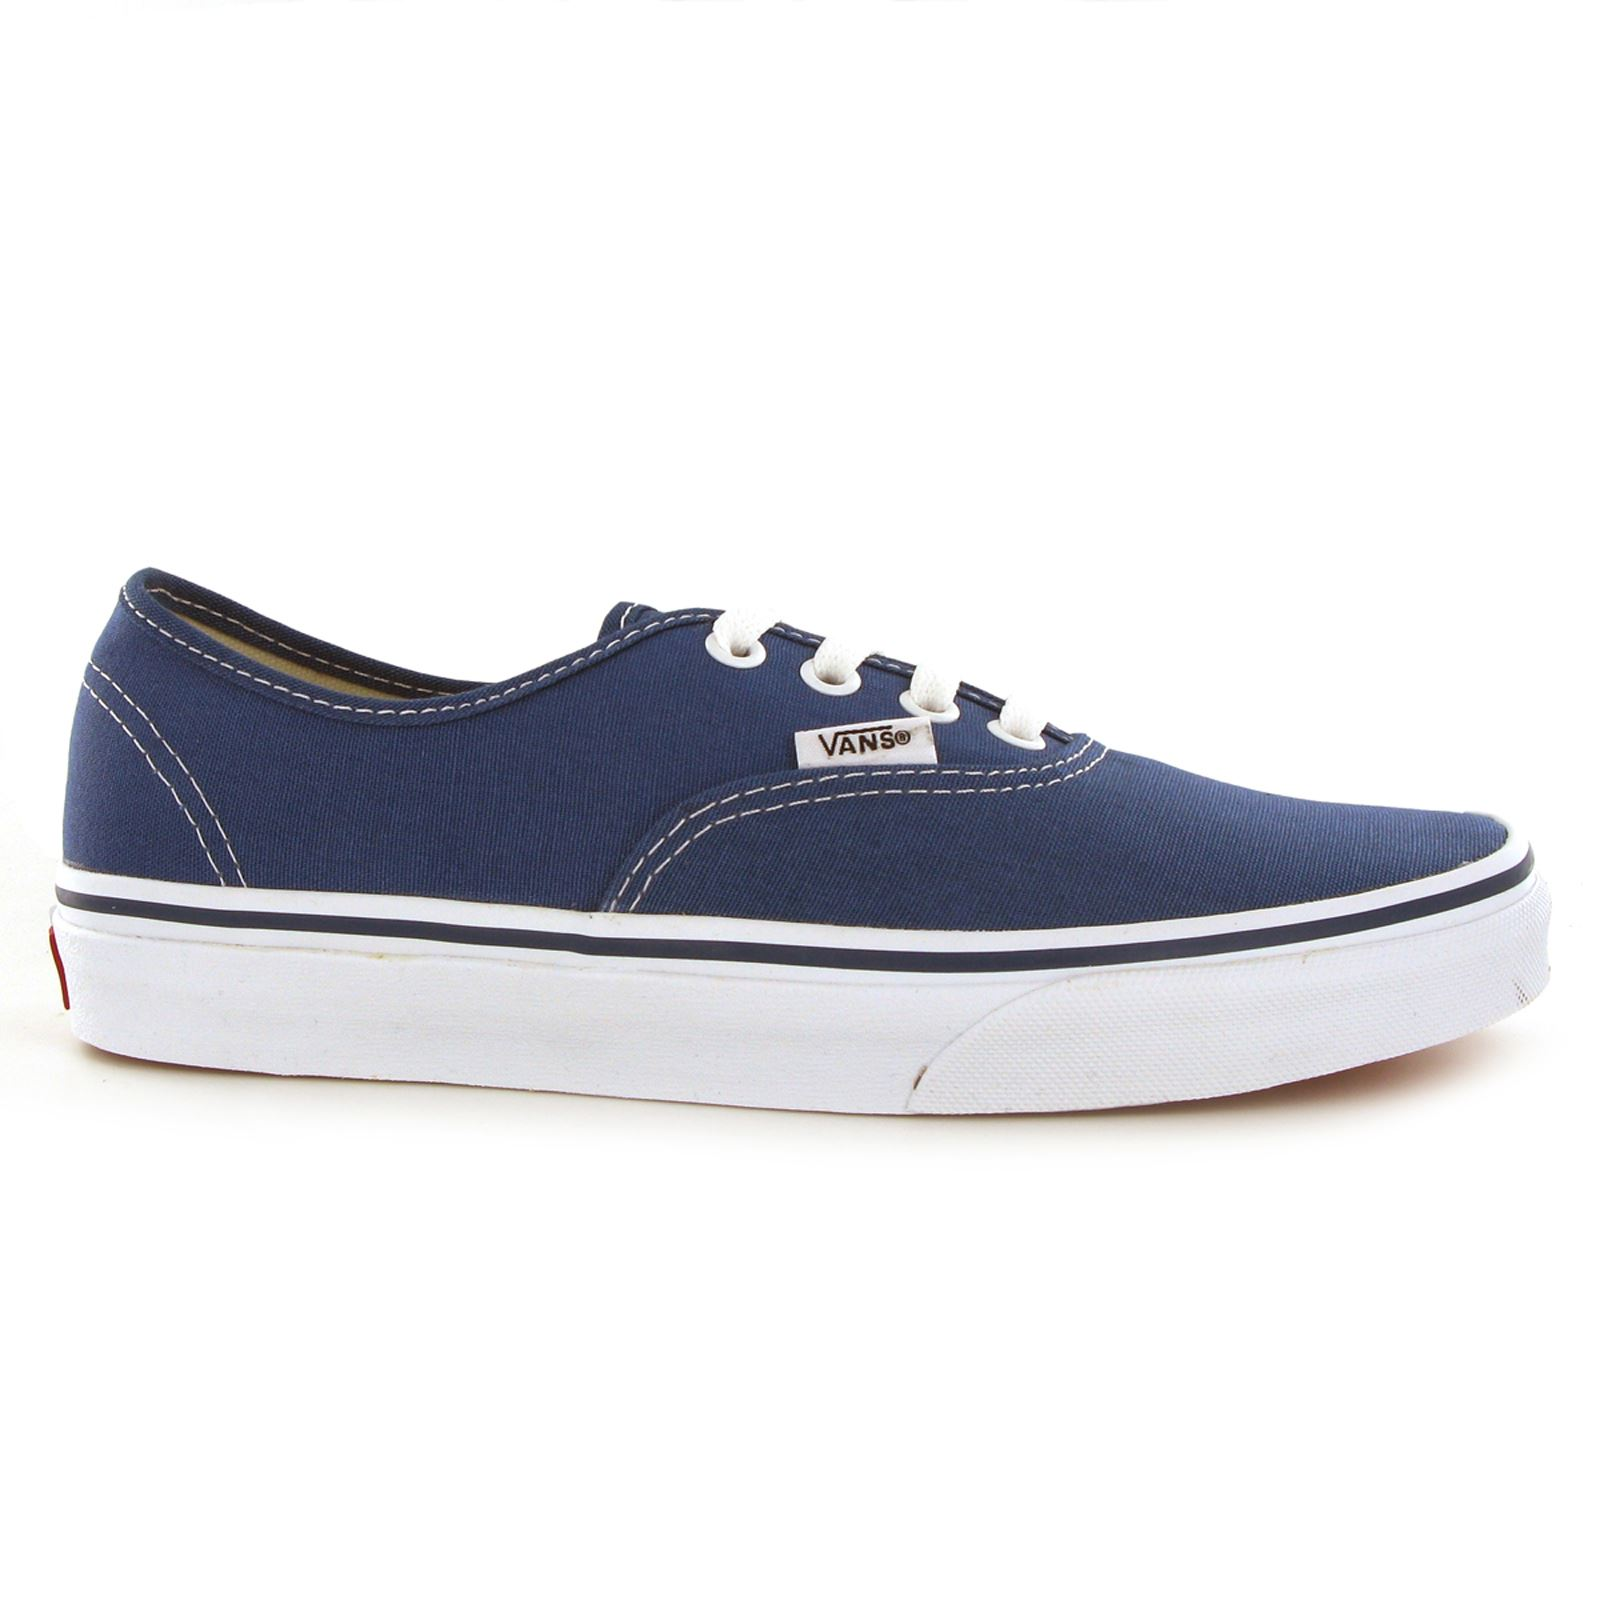 Skate shoes vans uk